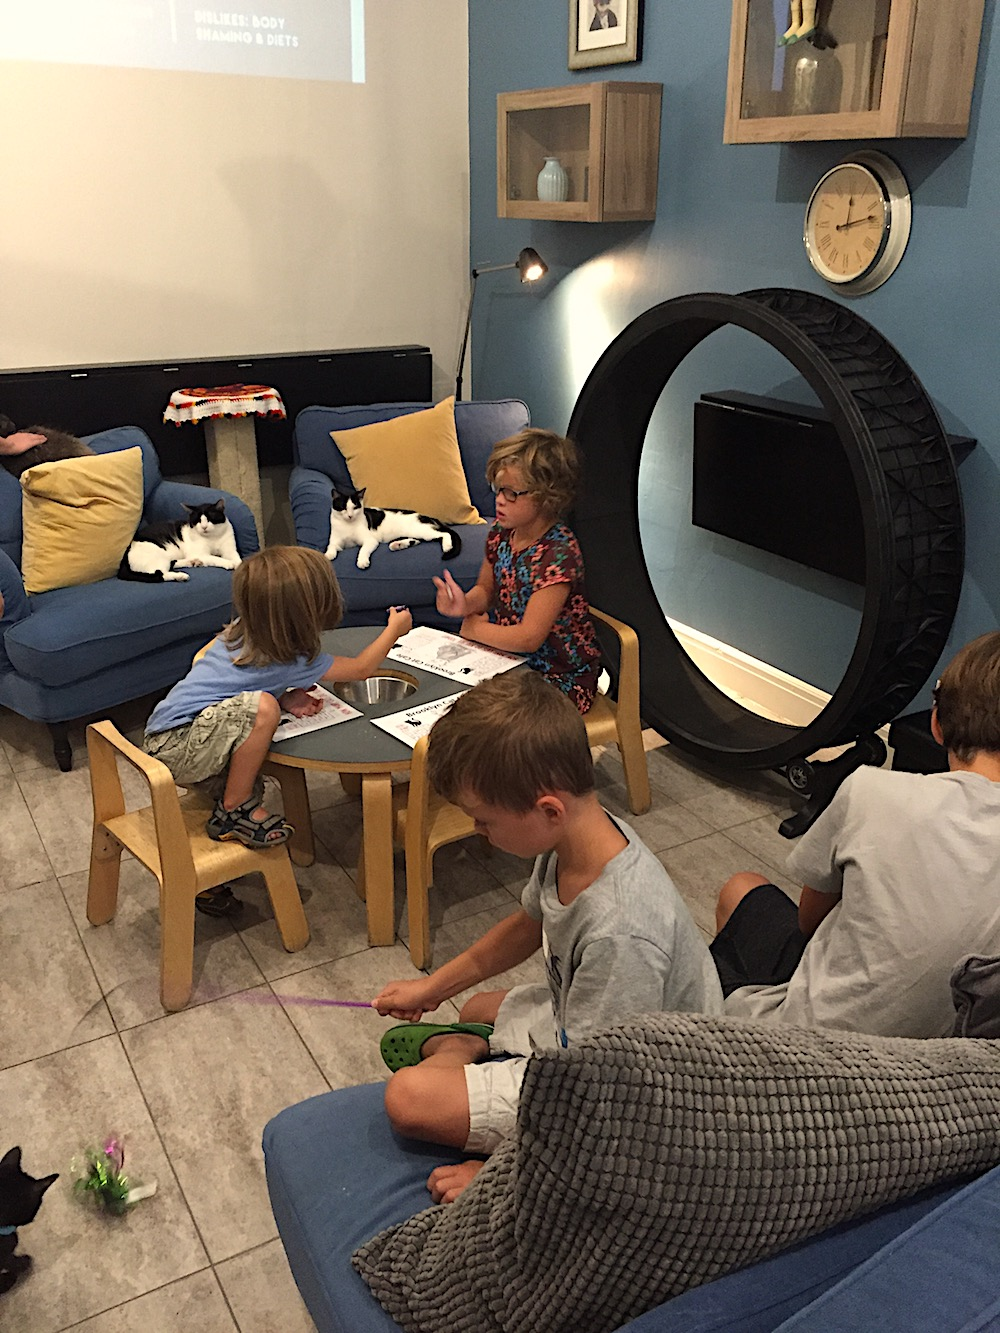 Doen in New York met kinderen - Cat Cafe 01